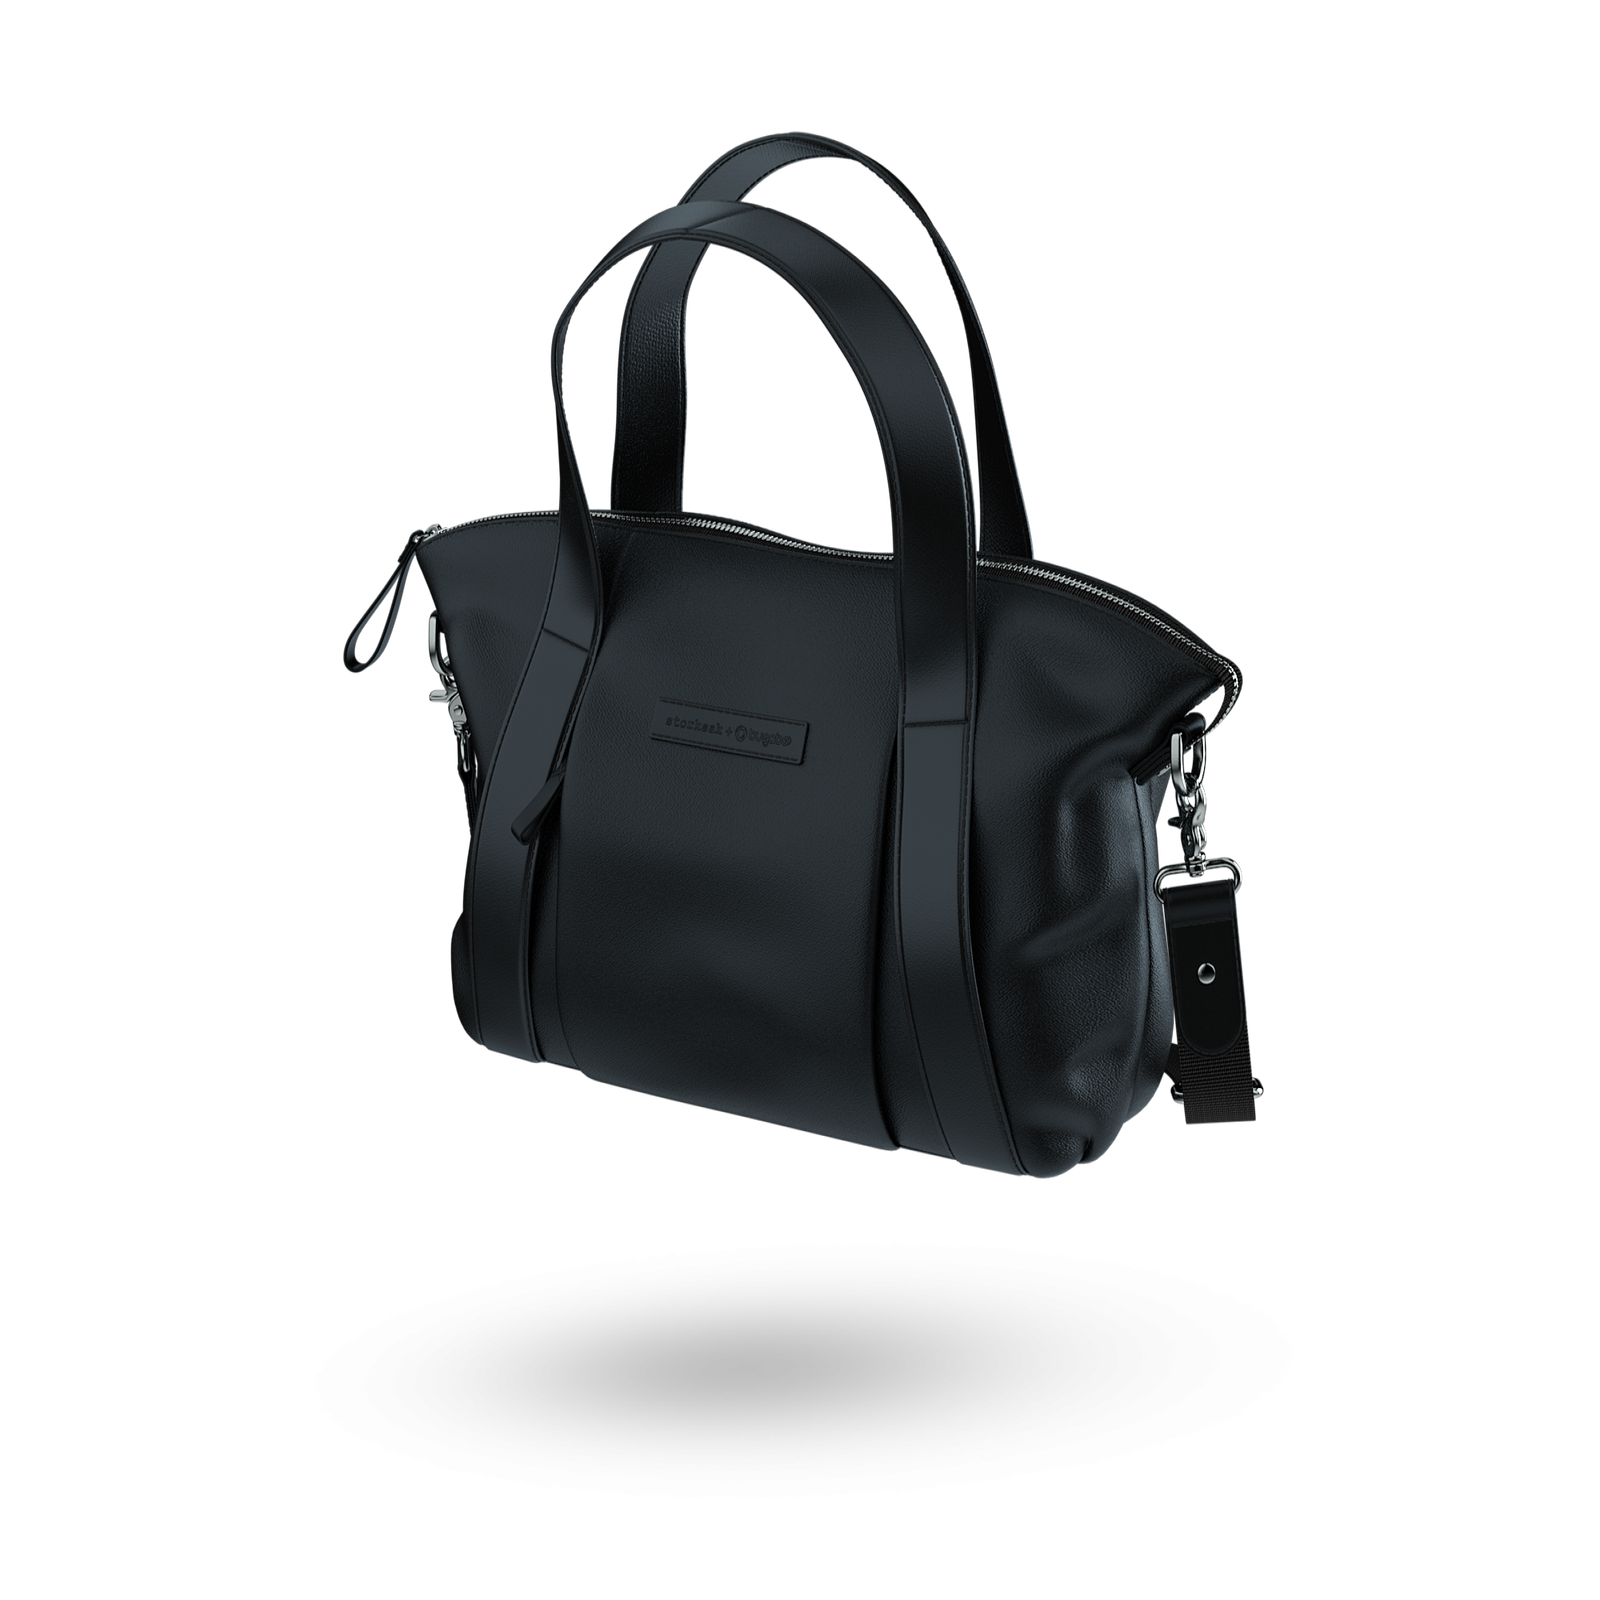 Bugaboo leather bag Black